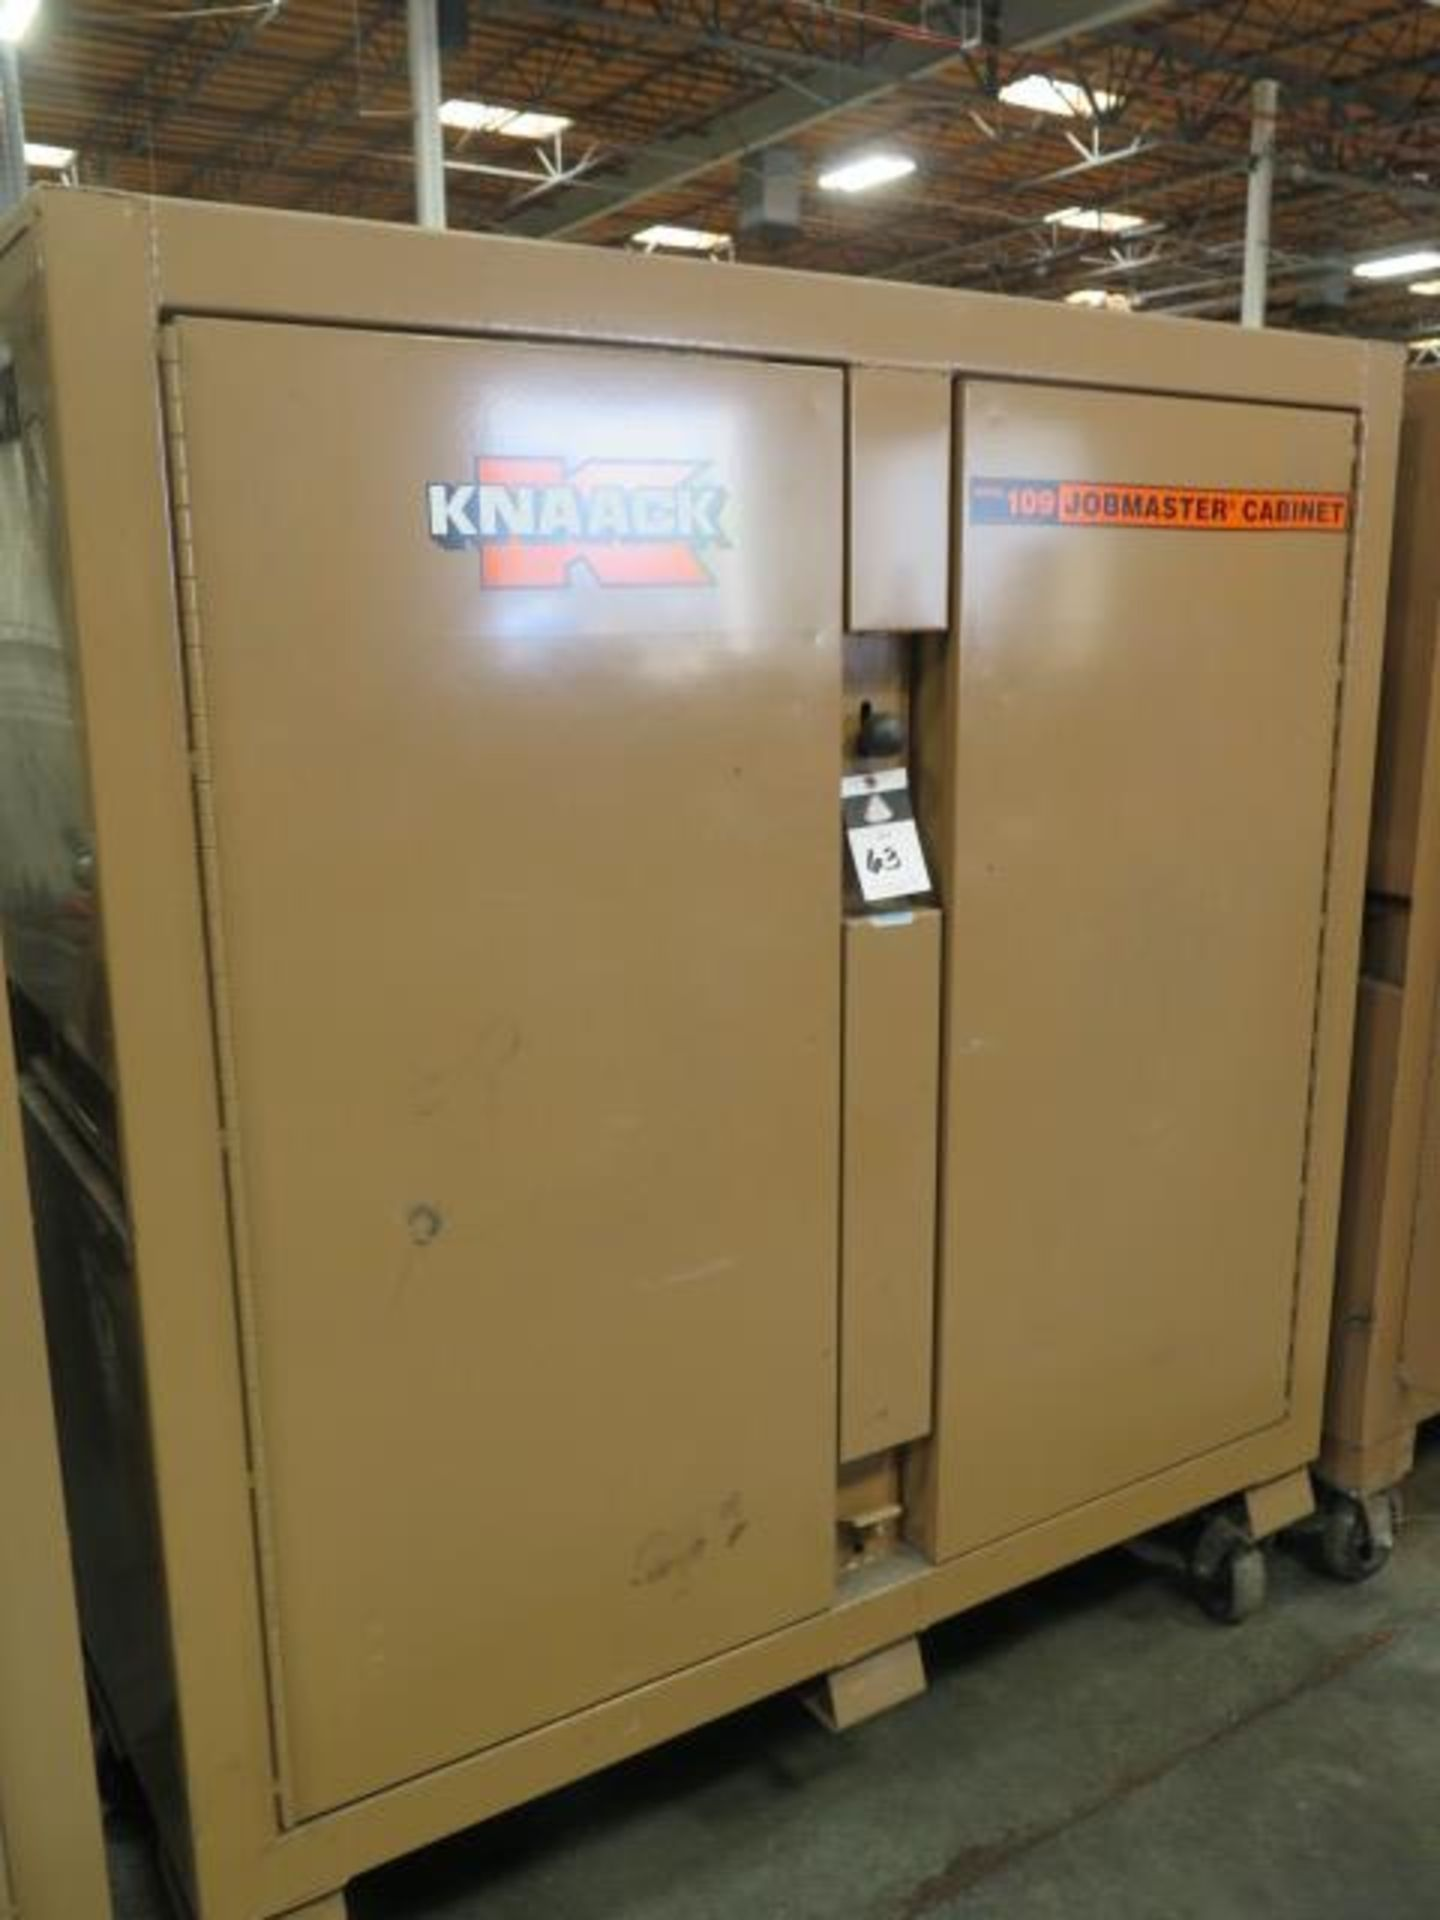 Welding Wire, Welding Guns and Misc Supplies w/ Knaack mdl. 109 Jobmaster Rolling Job Box (SOLD AS- - Image 13 of 16